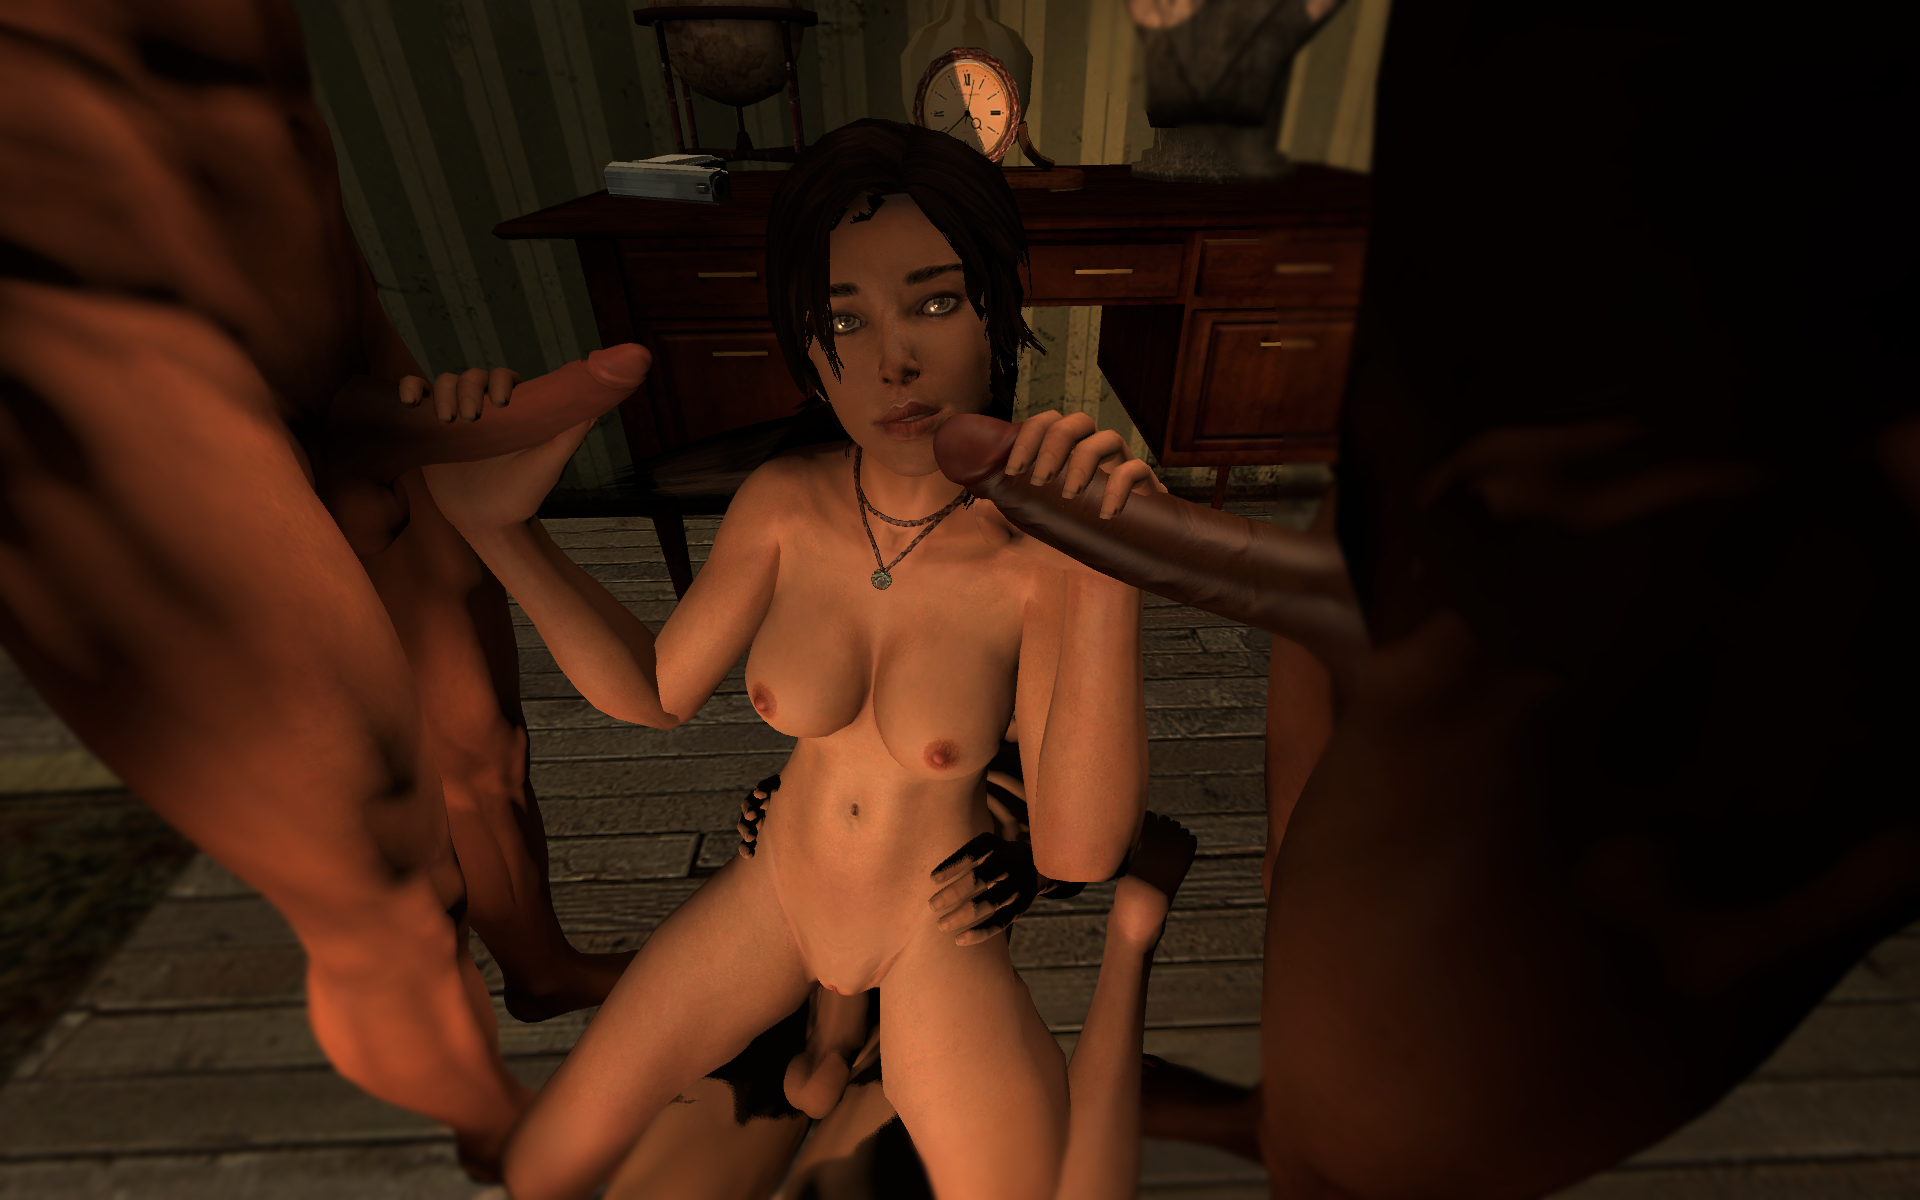 Tomb raider 3 nudepatch rar xxx scene